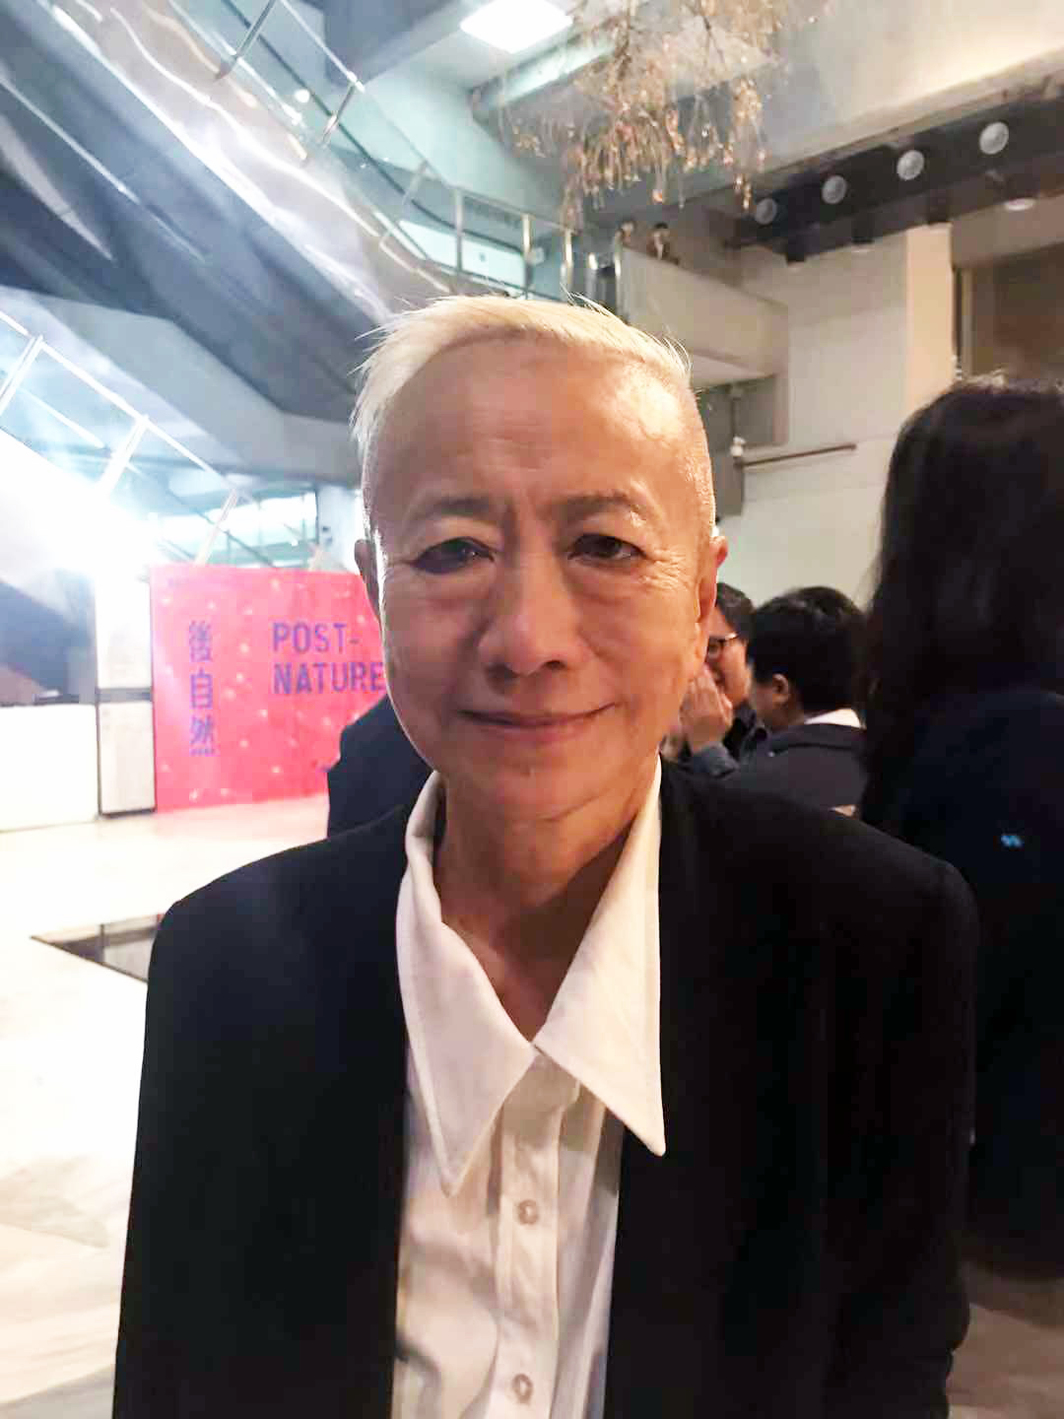 Artist Shu Lea Cheang, who is representing Taiwan at the 58th Venice Biennale.